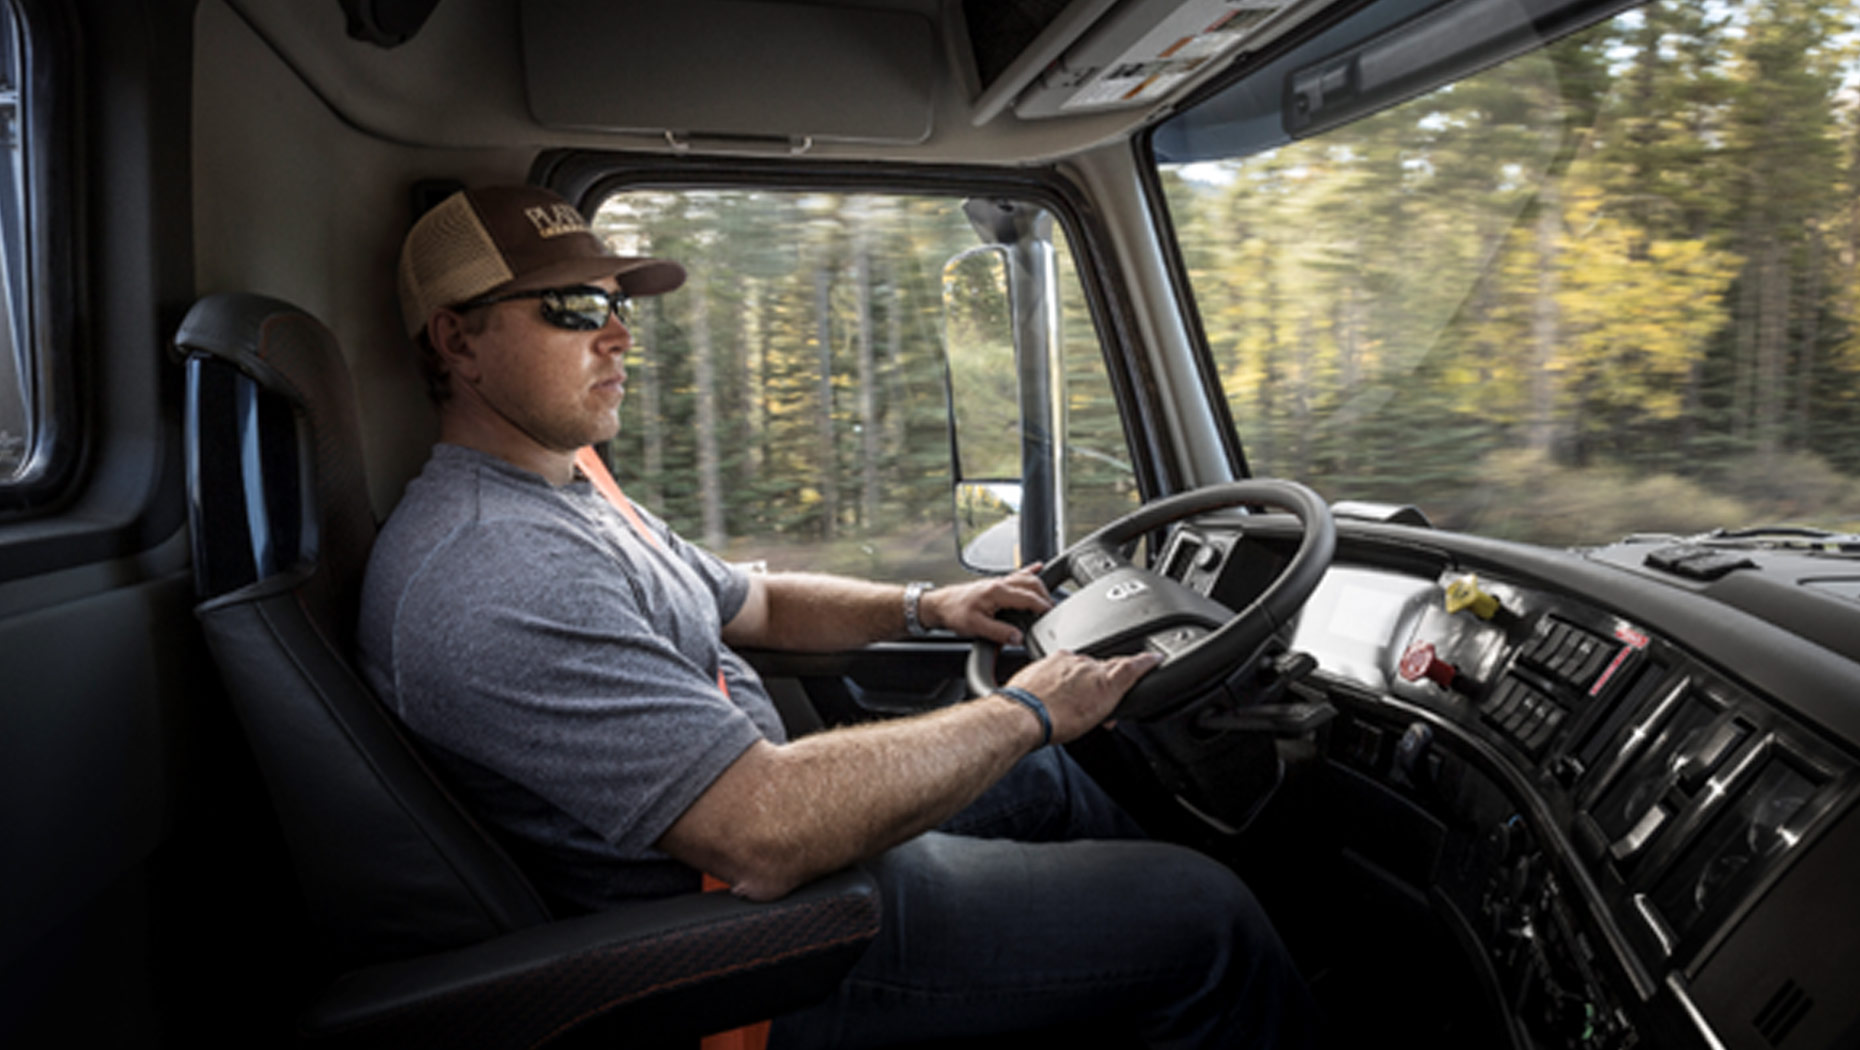 National Truck Driver Appreciation